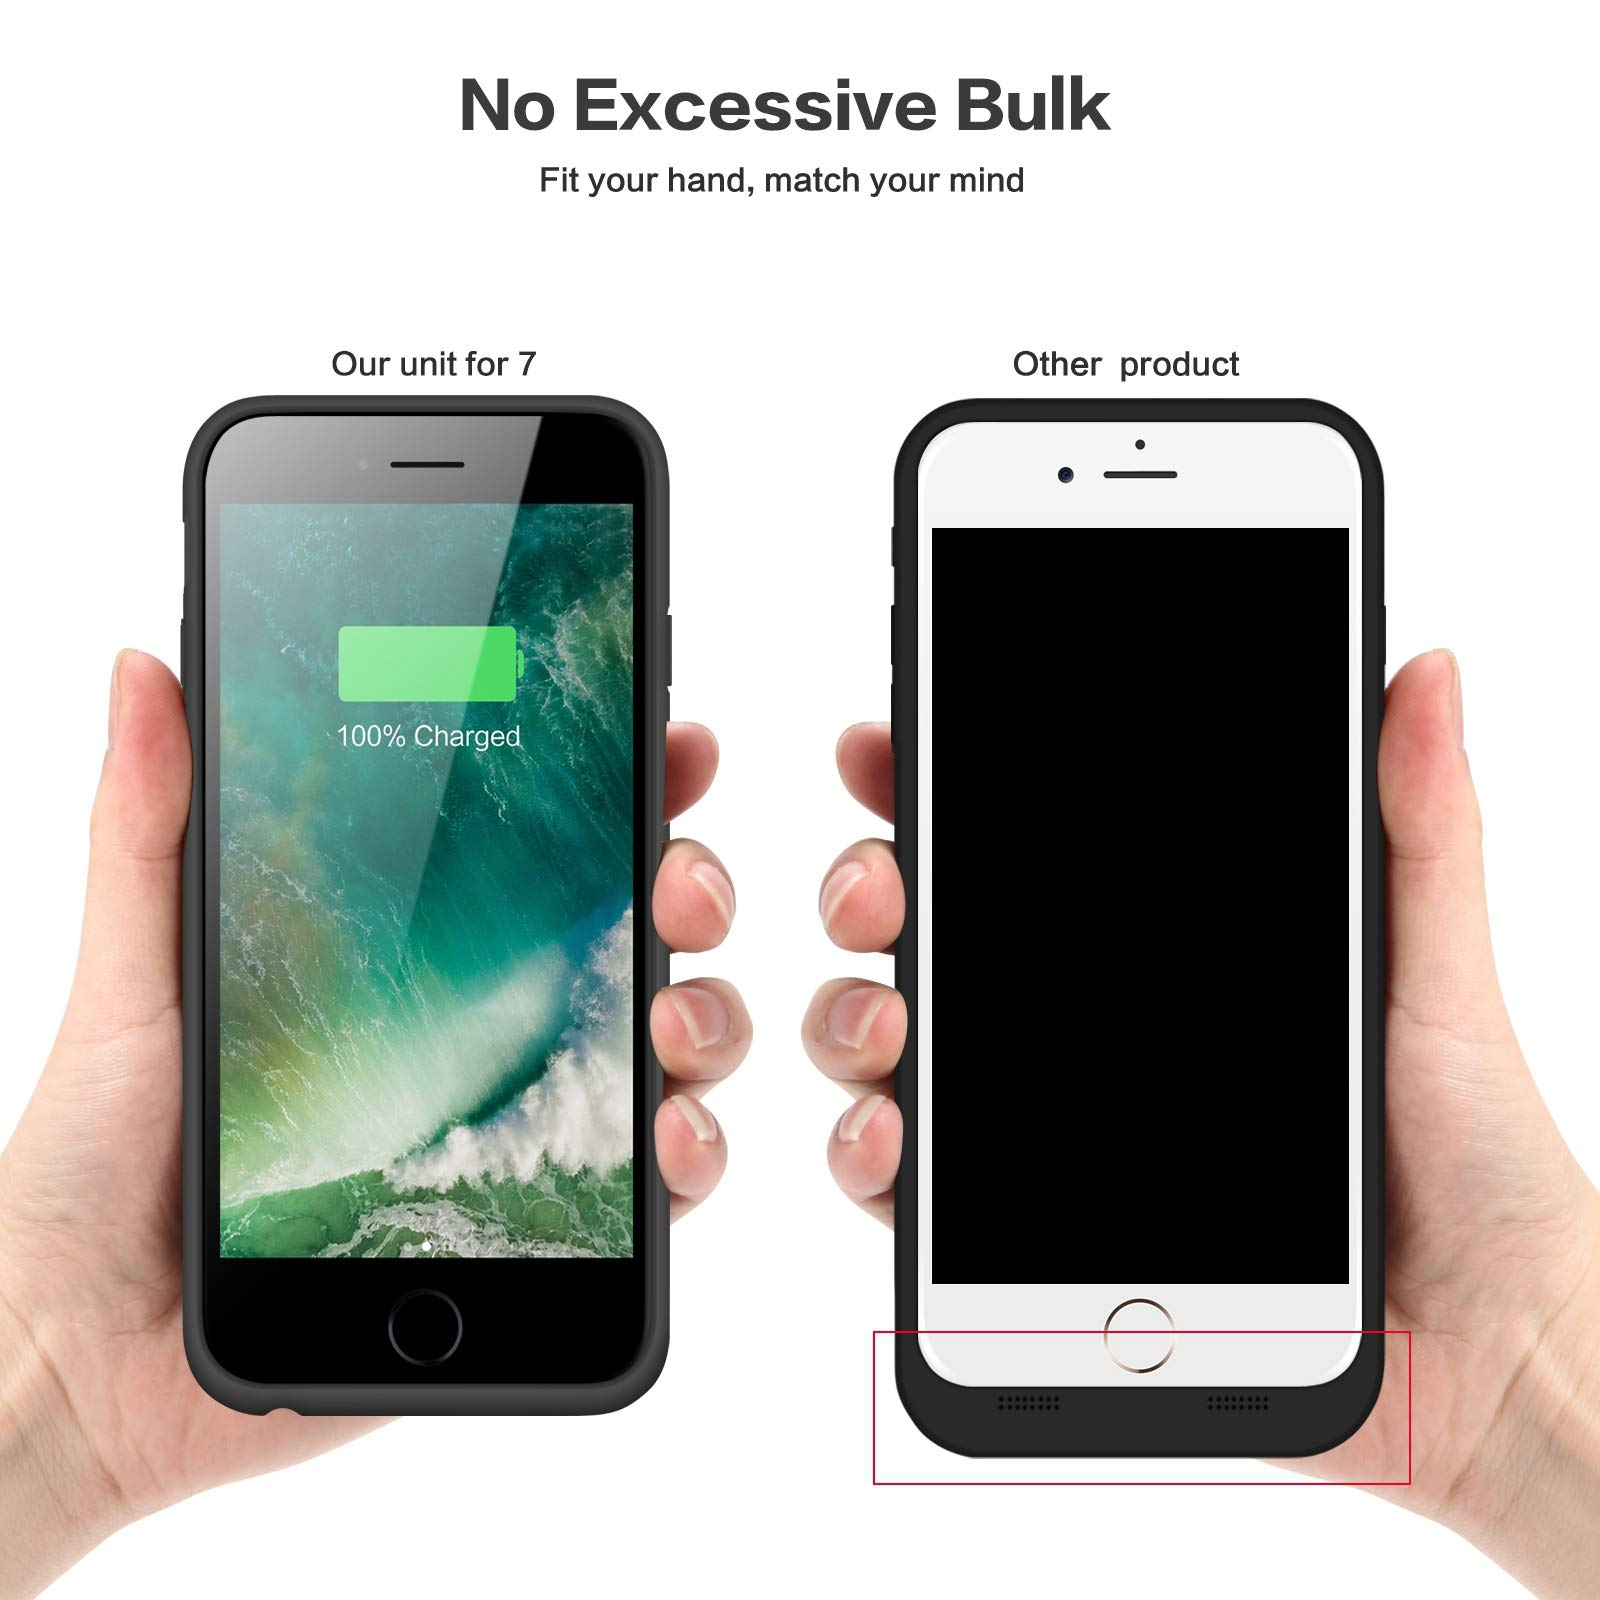 Battery case for iPhone 8/7, Xooparc [6000mah] Upgraded Charging Case Protective Portable Charger Case Rechargeable Extended Battery Pack for Apple iPhone 7/8(4.7') Backup Power Bank Cover (Black) by Xooparc (Image #6)